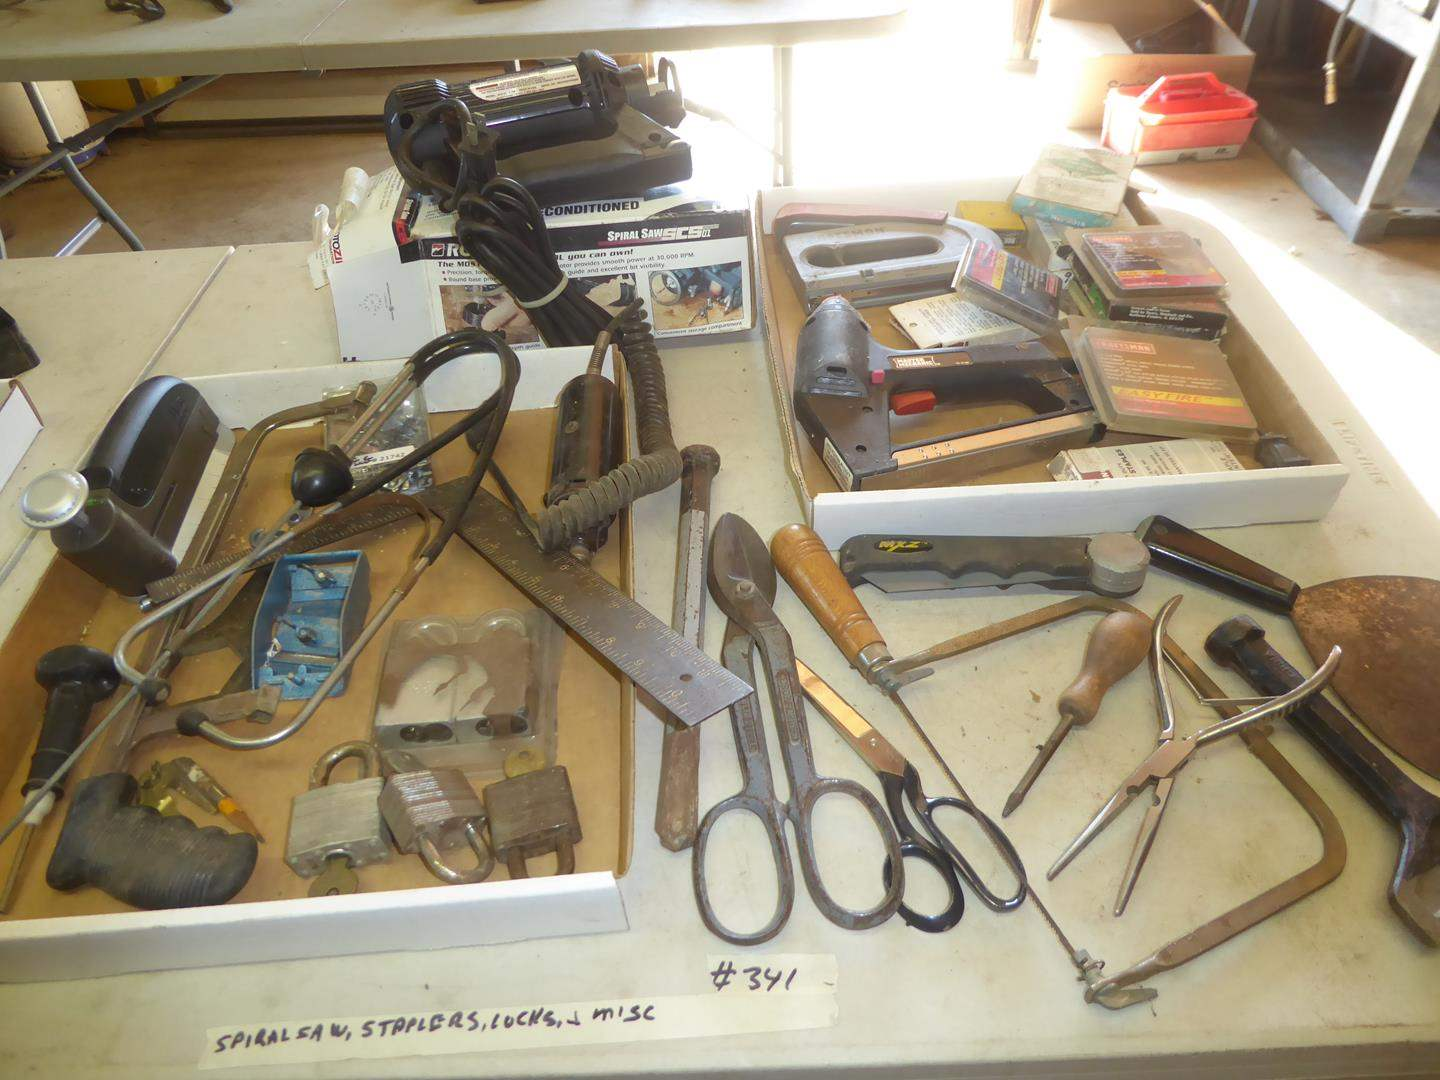 Lot # 341 - Rotozip Spiral Saw, Staplers, Padlocks & Misc. (main image)